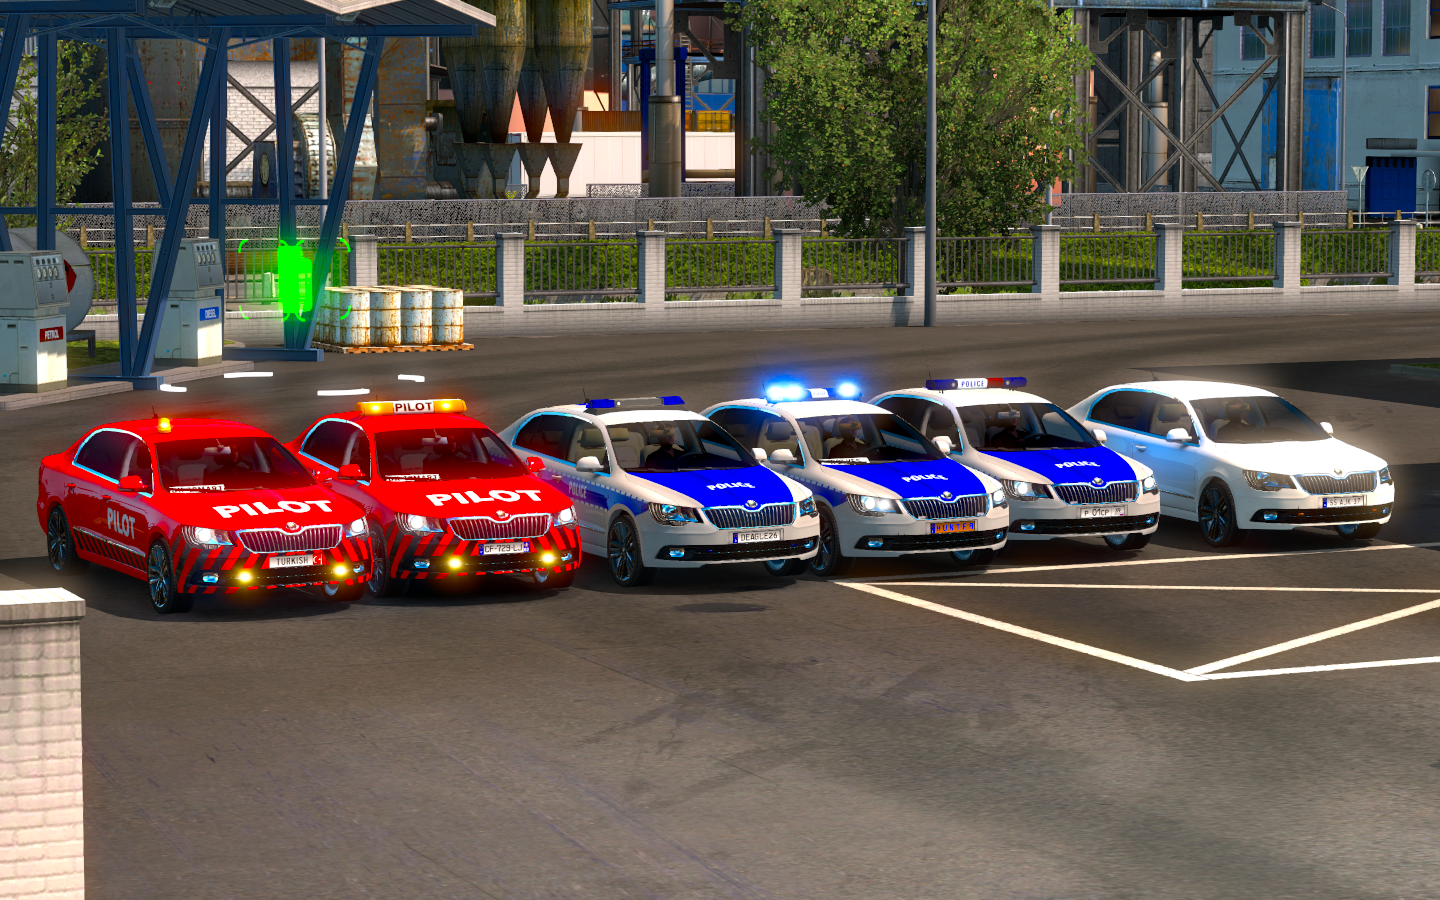 ets2_20190315_203154_00.png